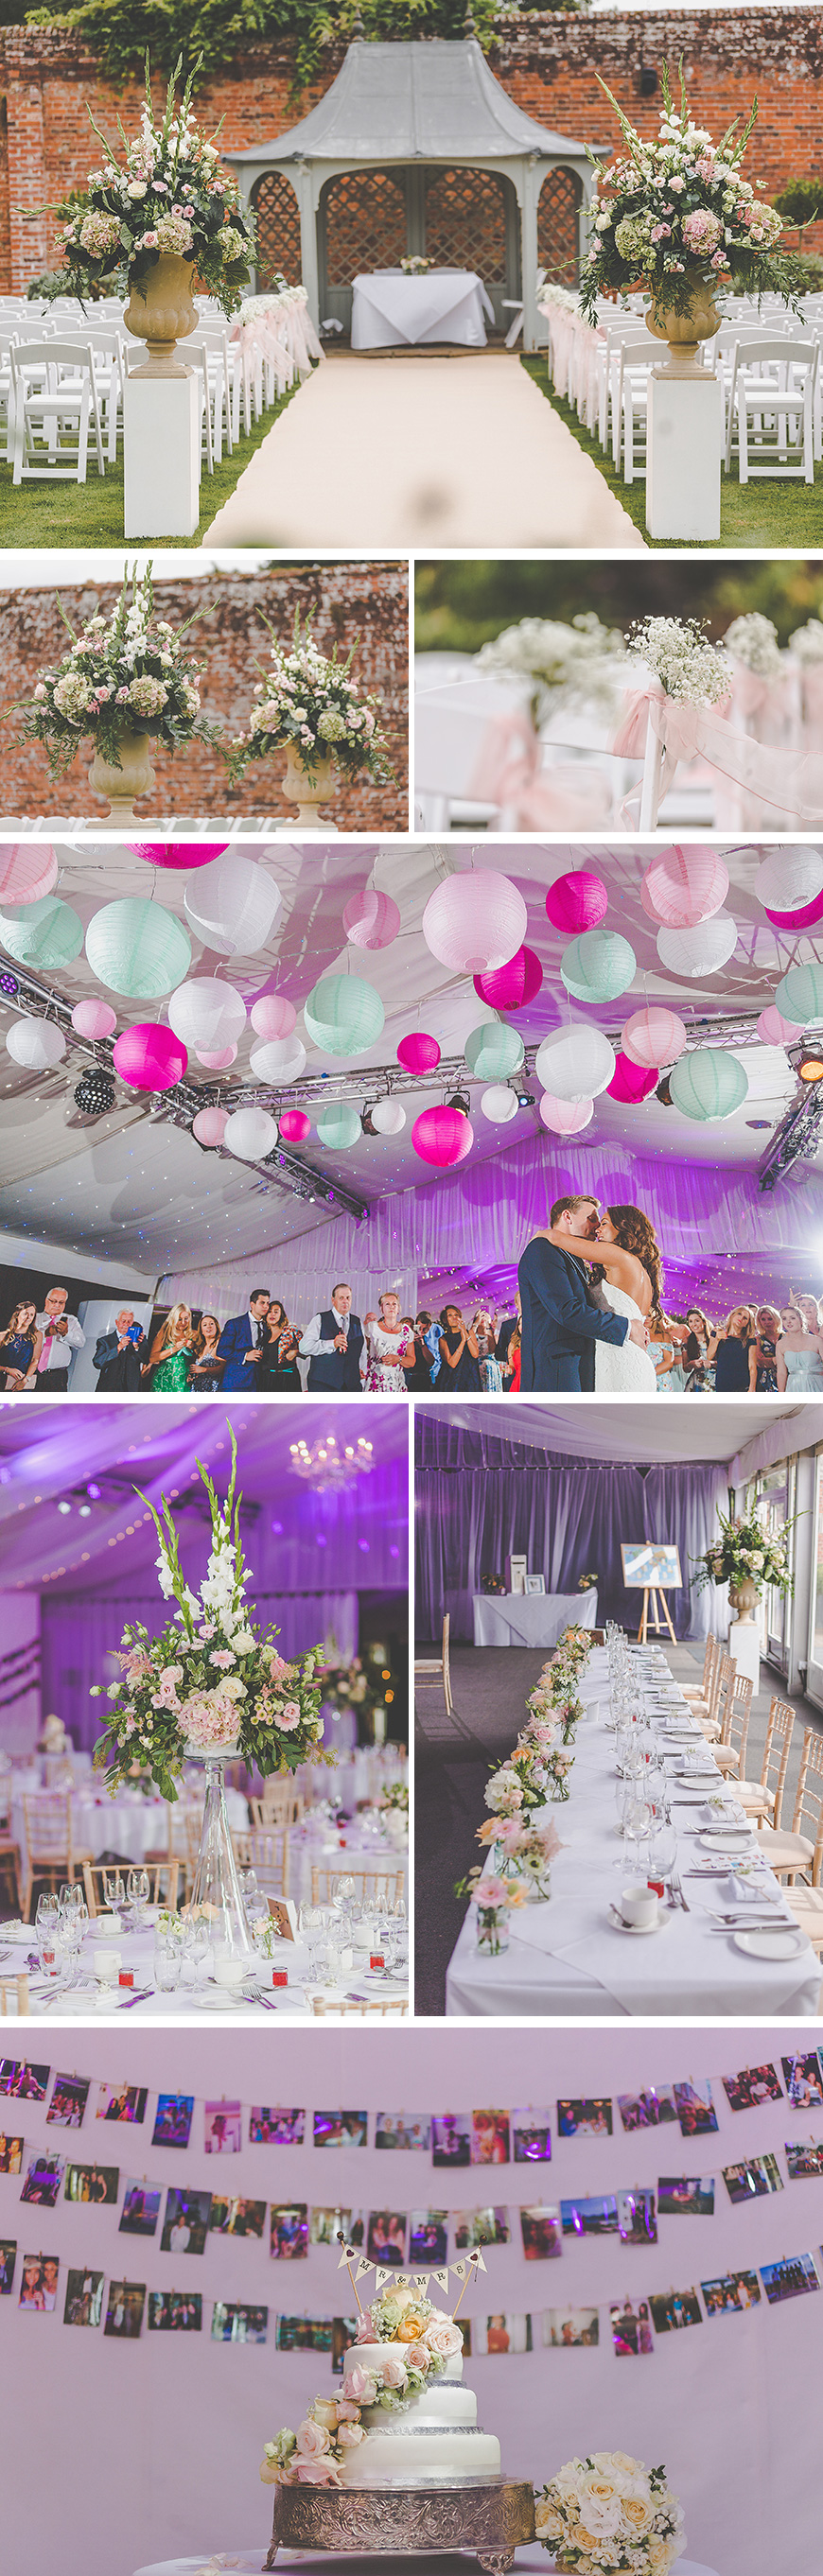 Zillia and Martyn's Pastel Summer Wedding At Braxted Park - The decorations | CHWV